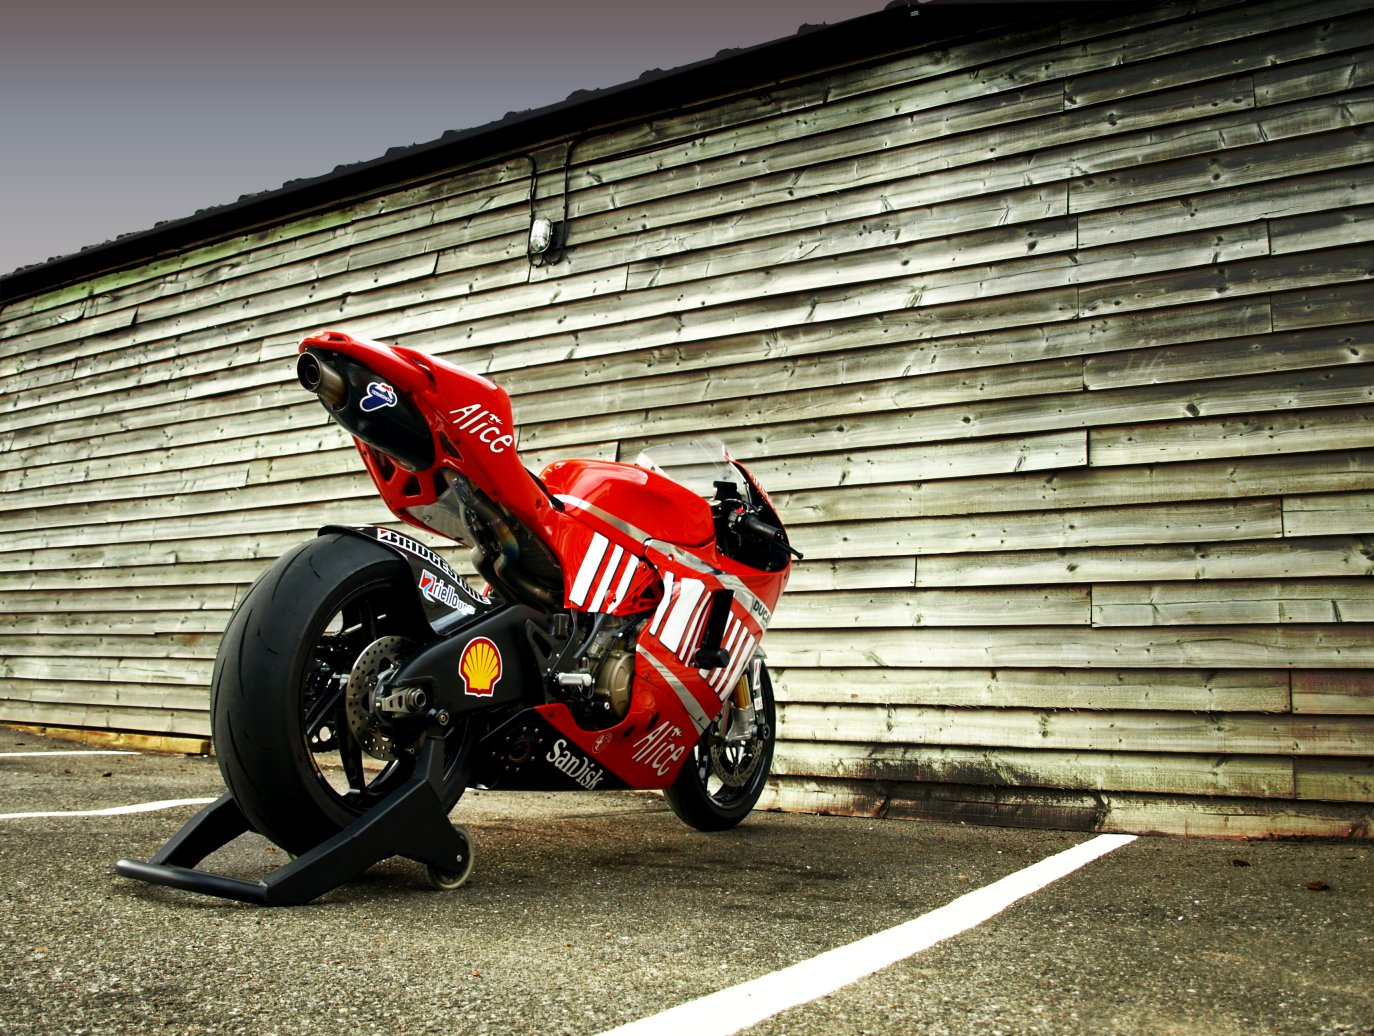 d16rr - just how loud is the gp7 exhaust? - ducati forum   the